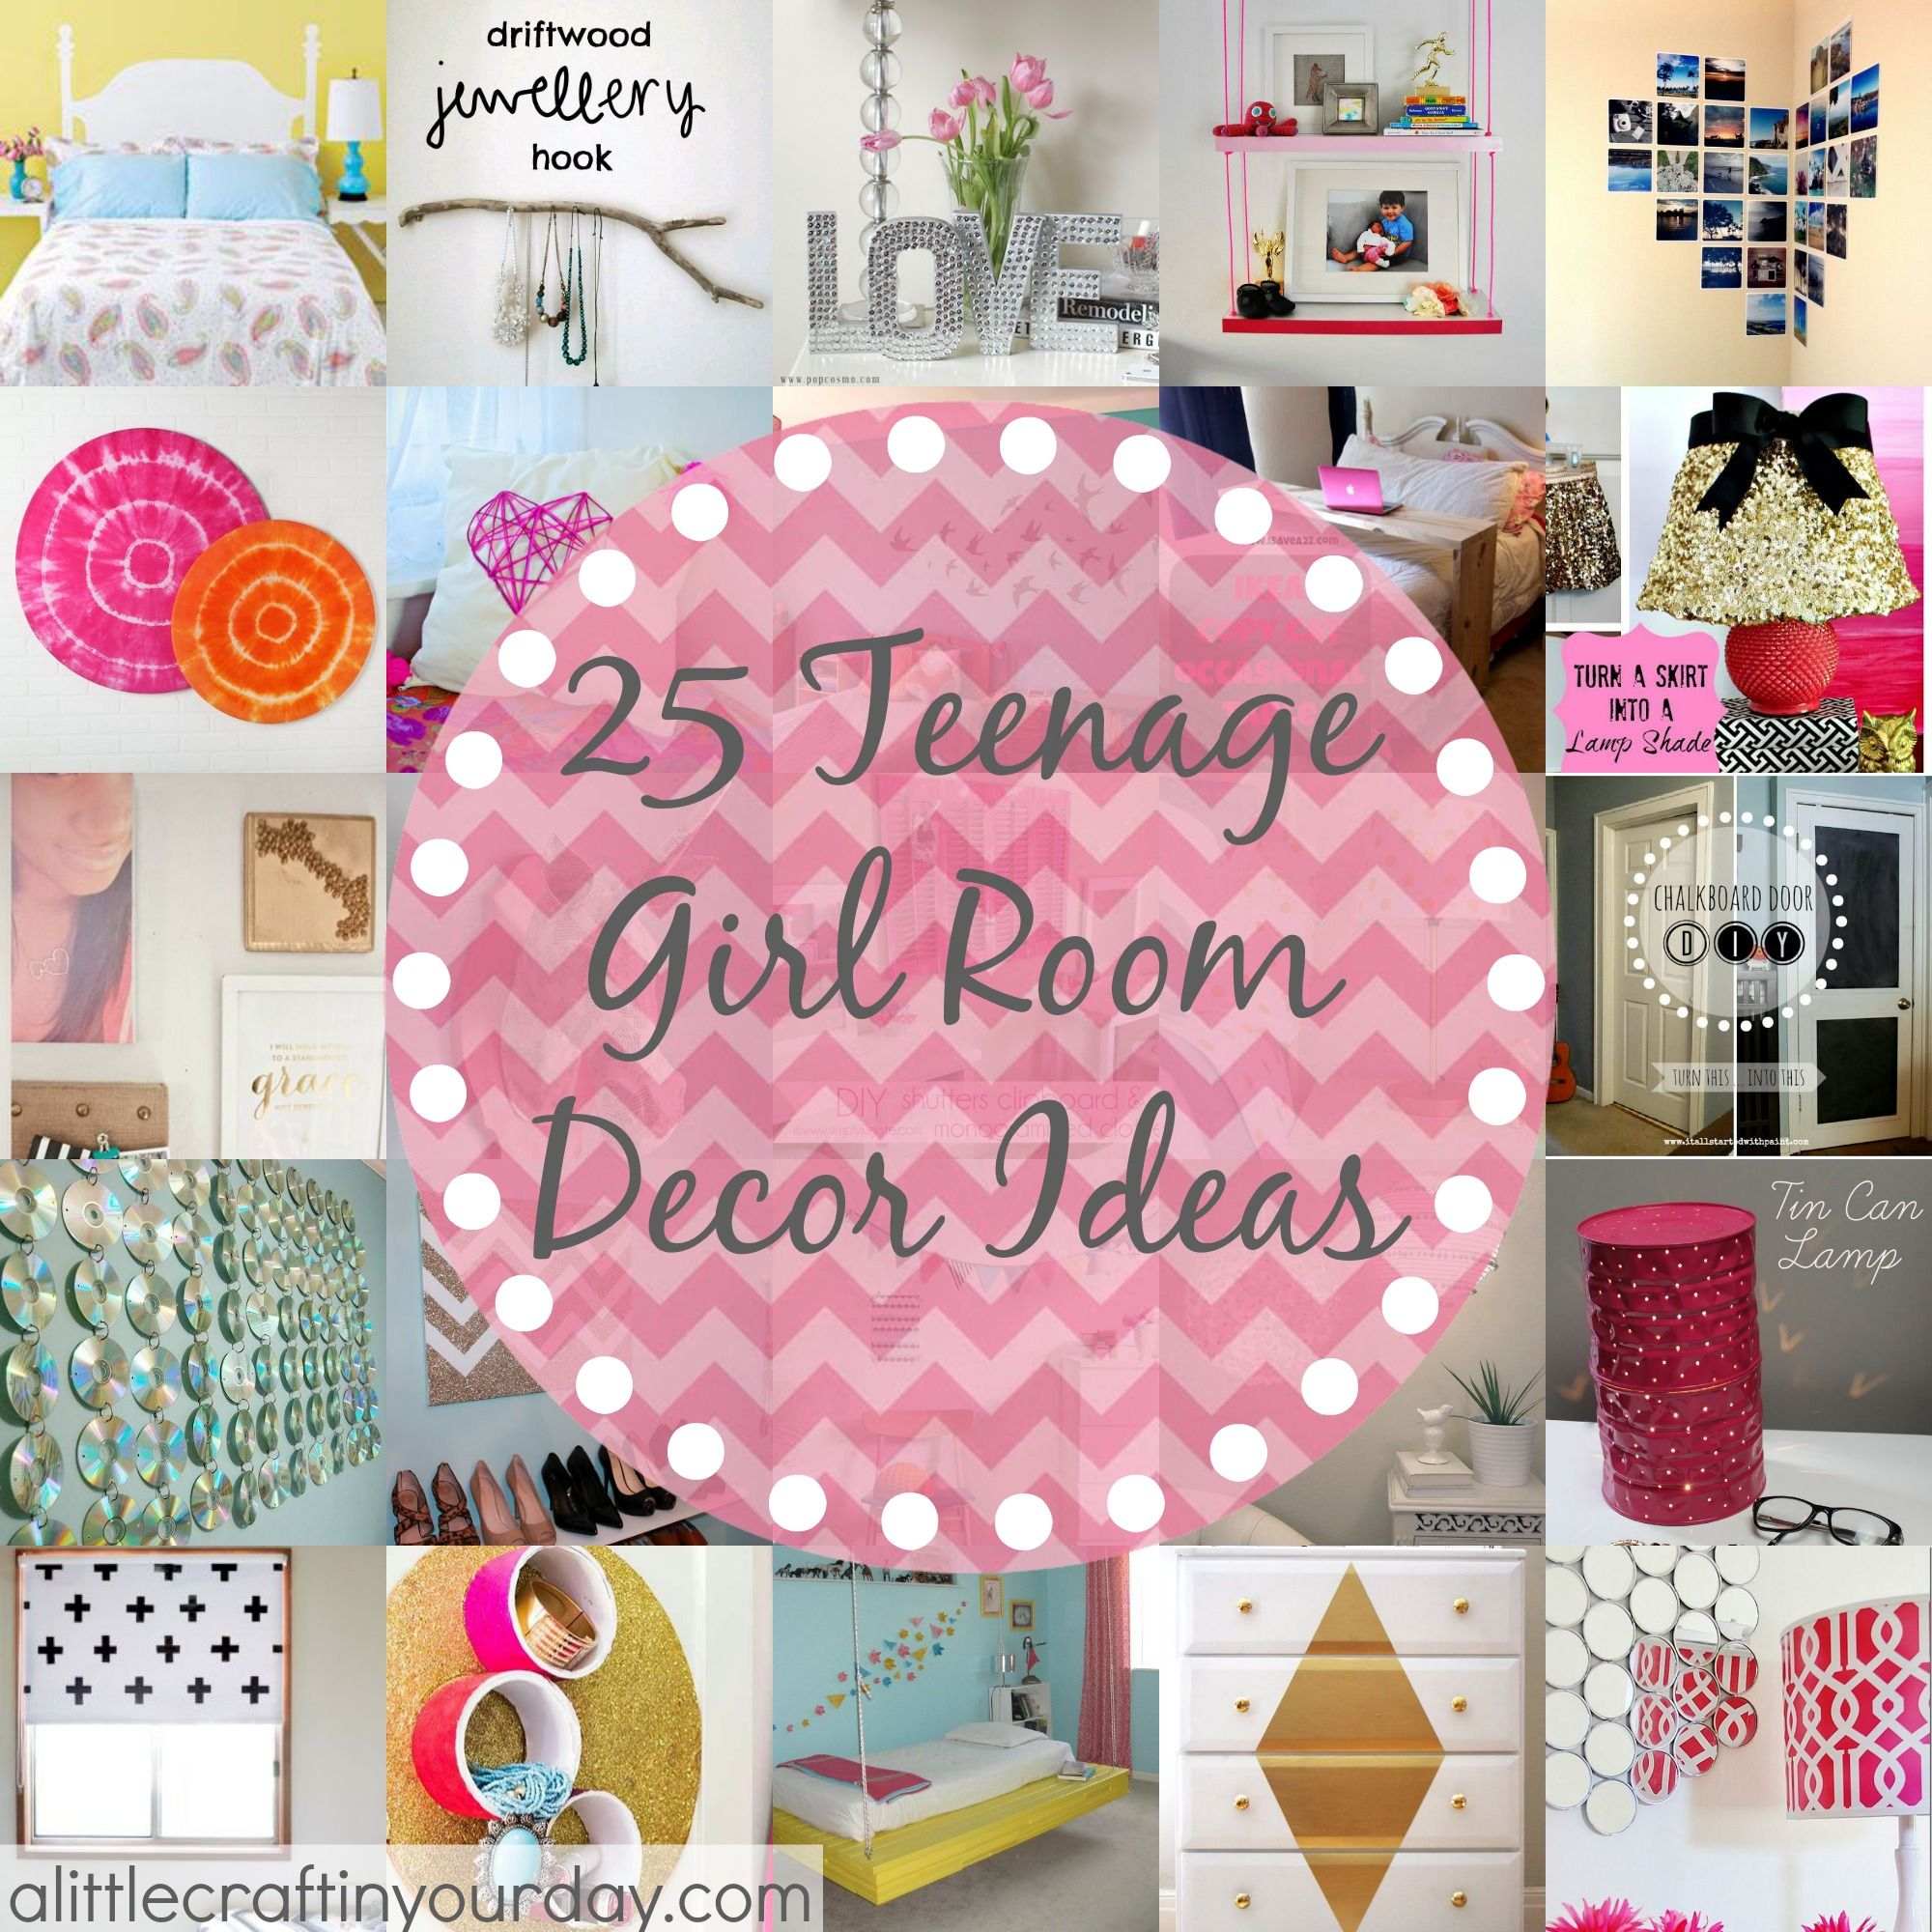 Fun Girl Room: 25 More Teenage Girl Room Decor Ideas